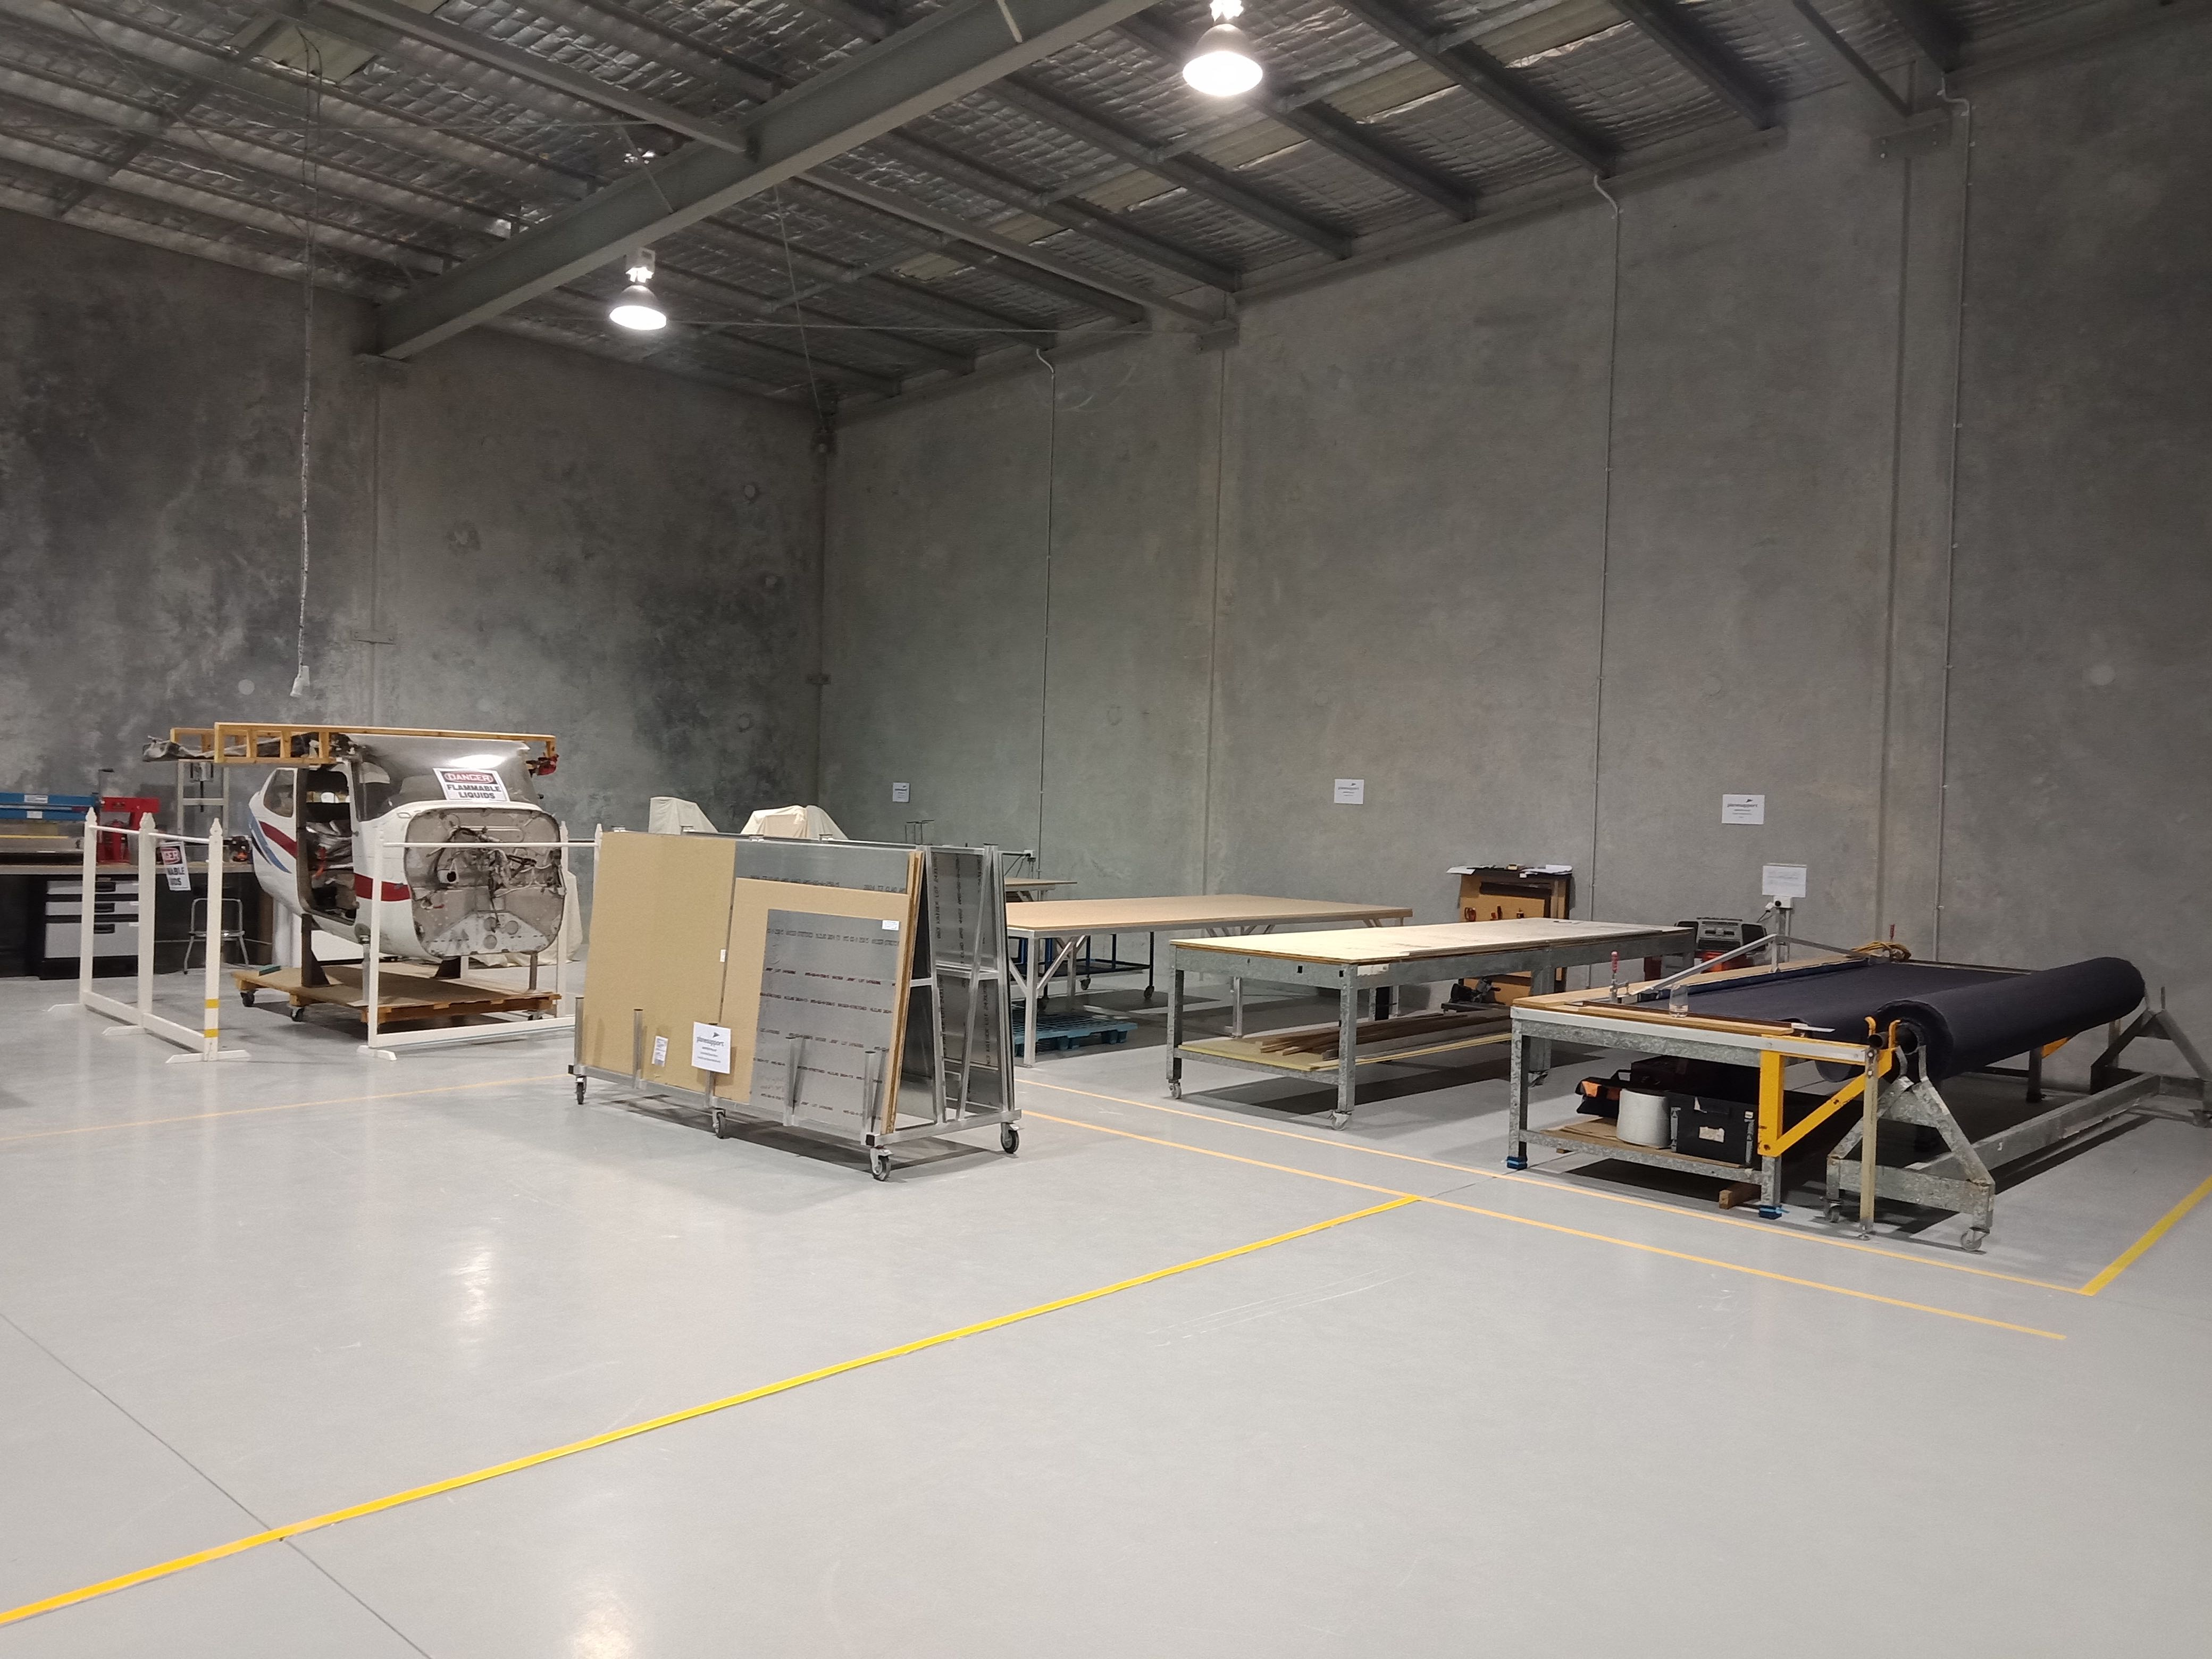 Plane Support new premises